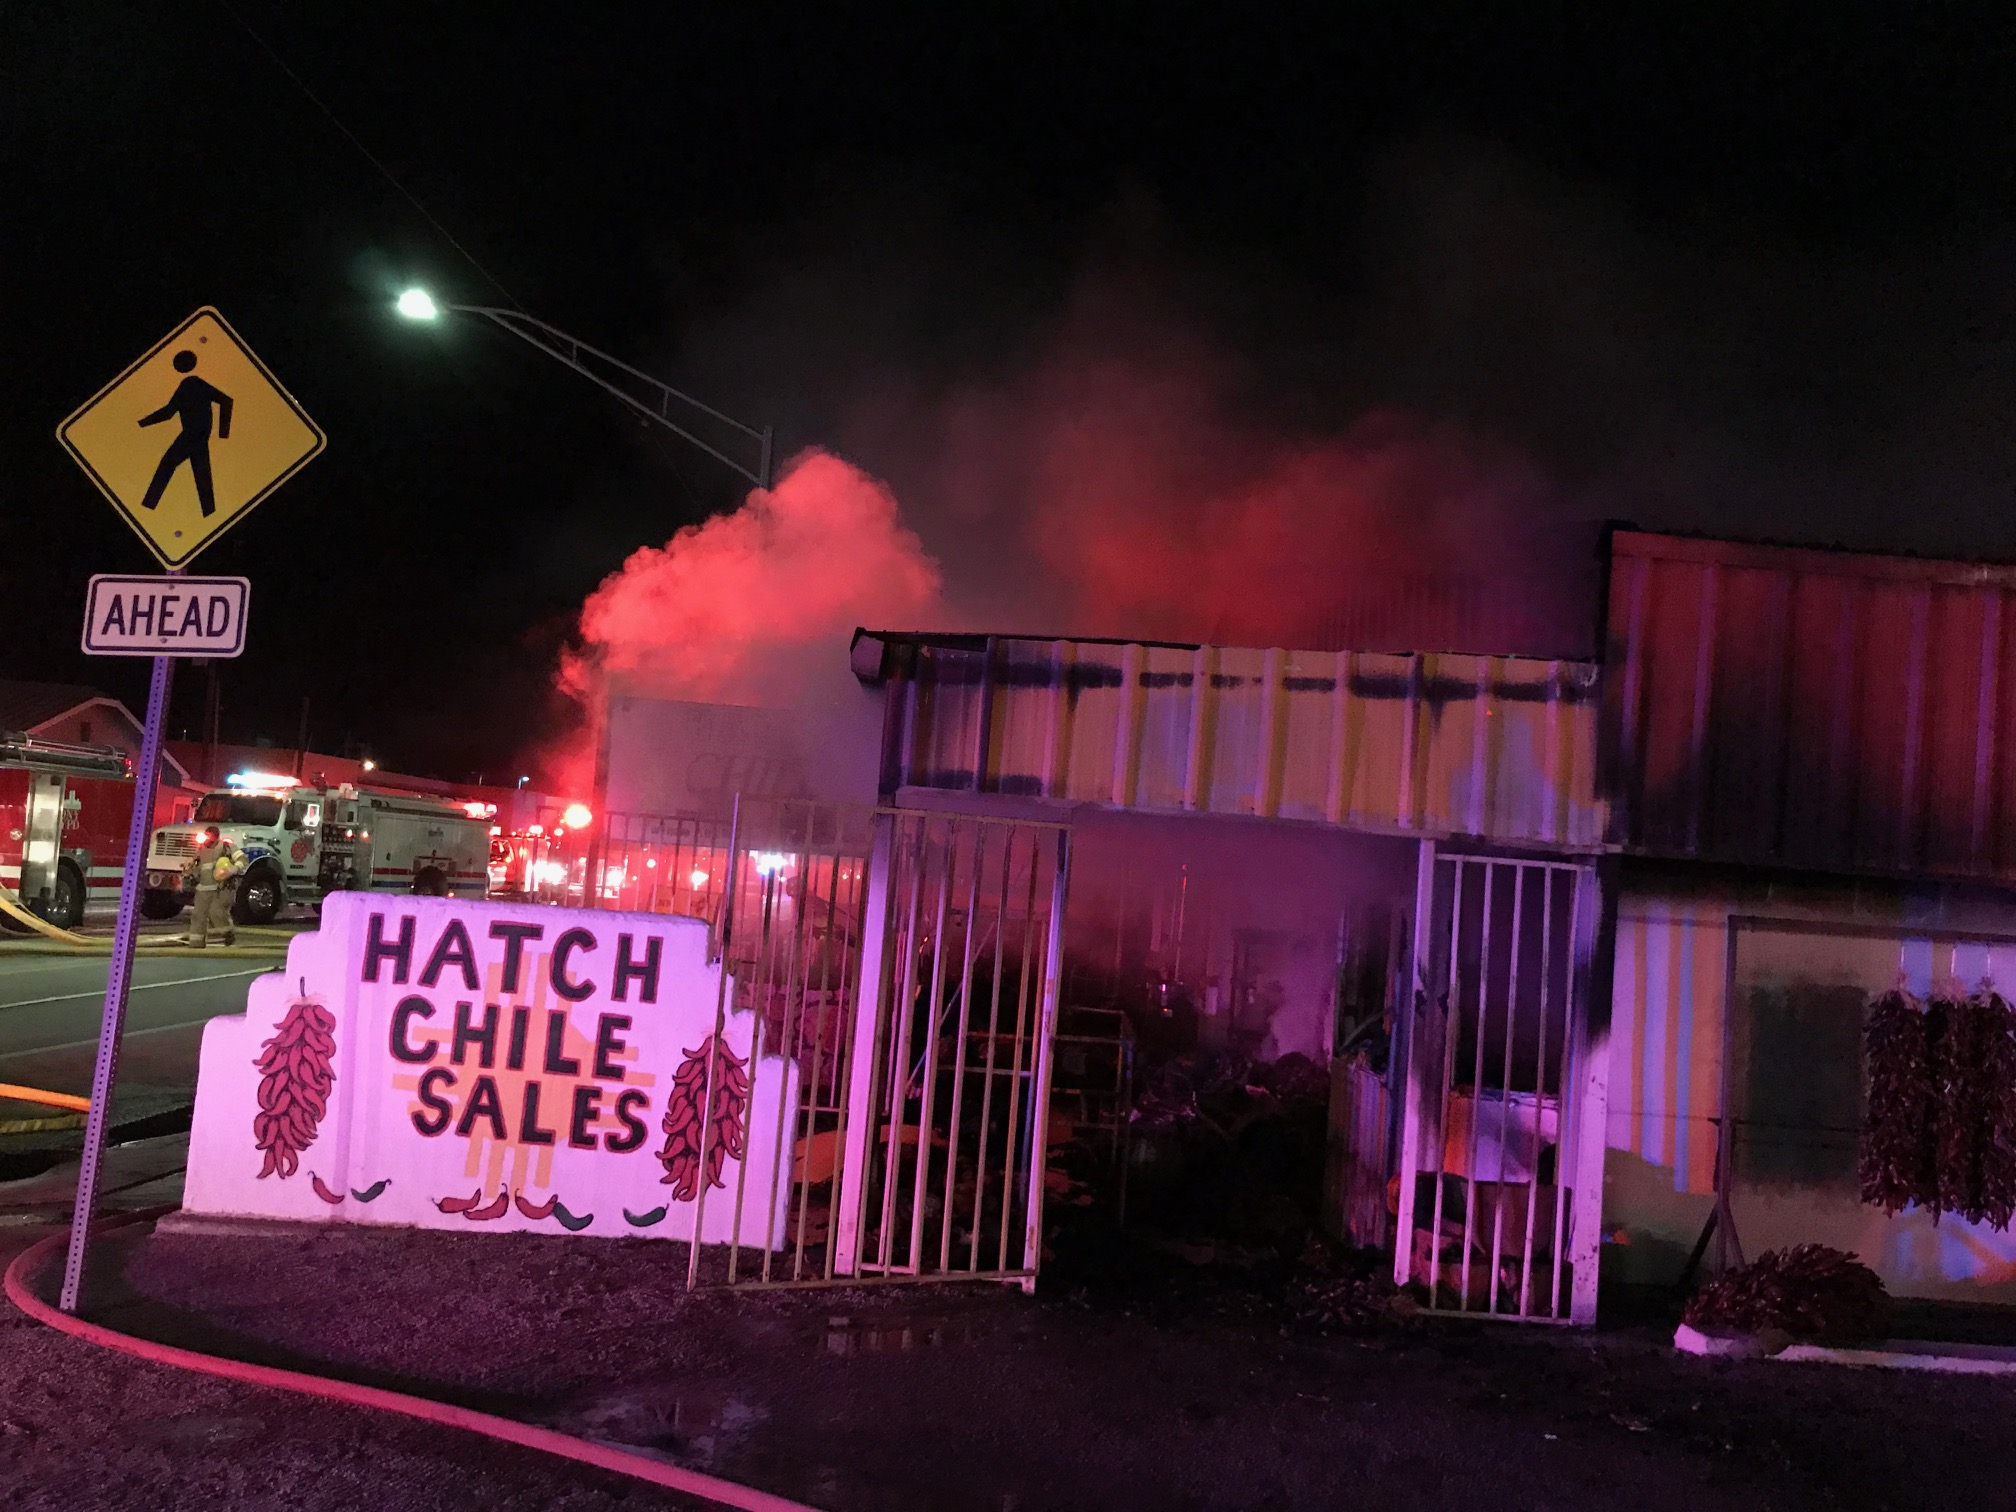 Hatch Chile Sales fire